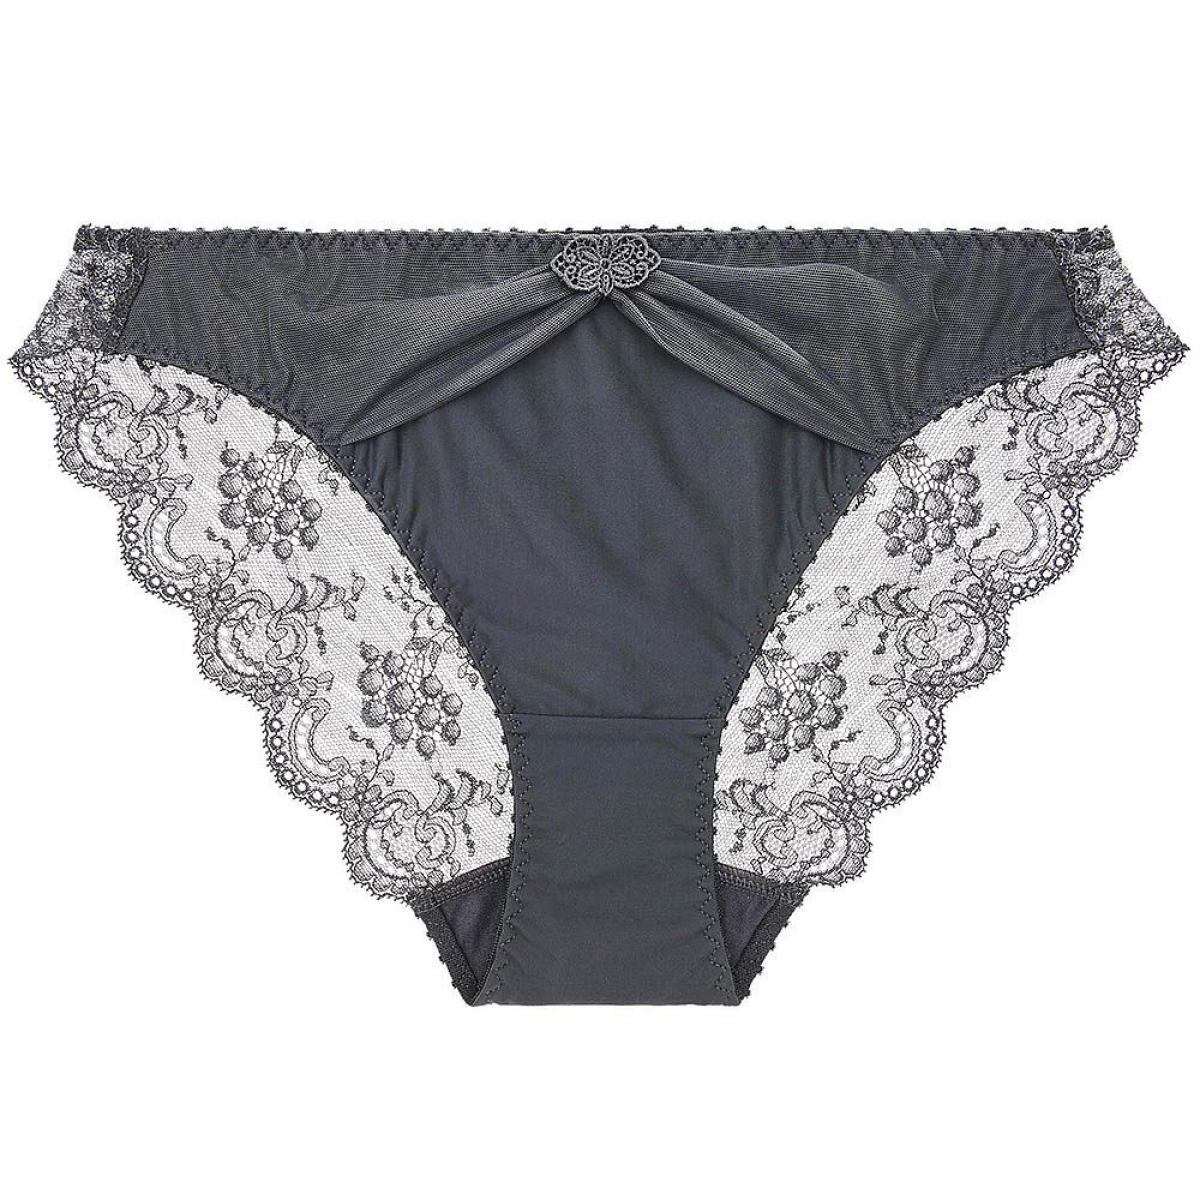 amazing selection great look best deals on AUBADE - Culotte italienne grise Aubade Aubade à l'Amour ...